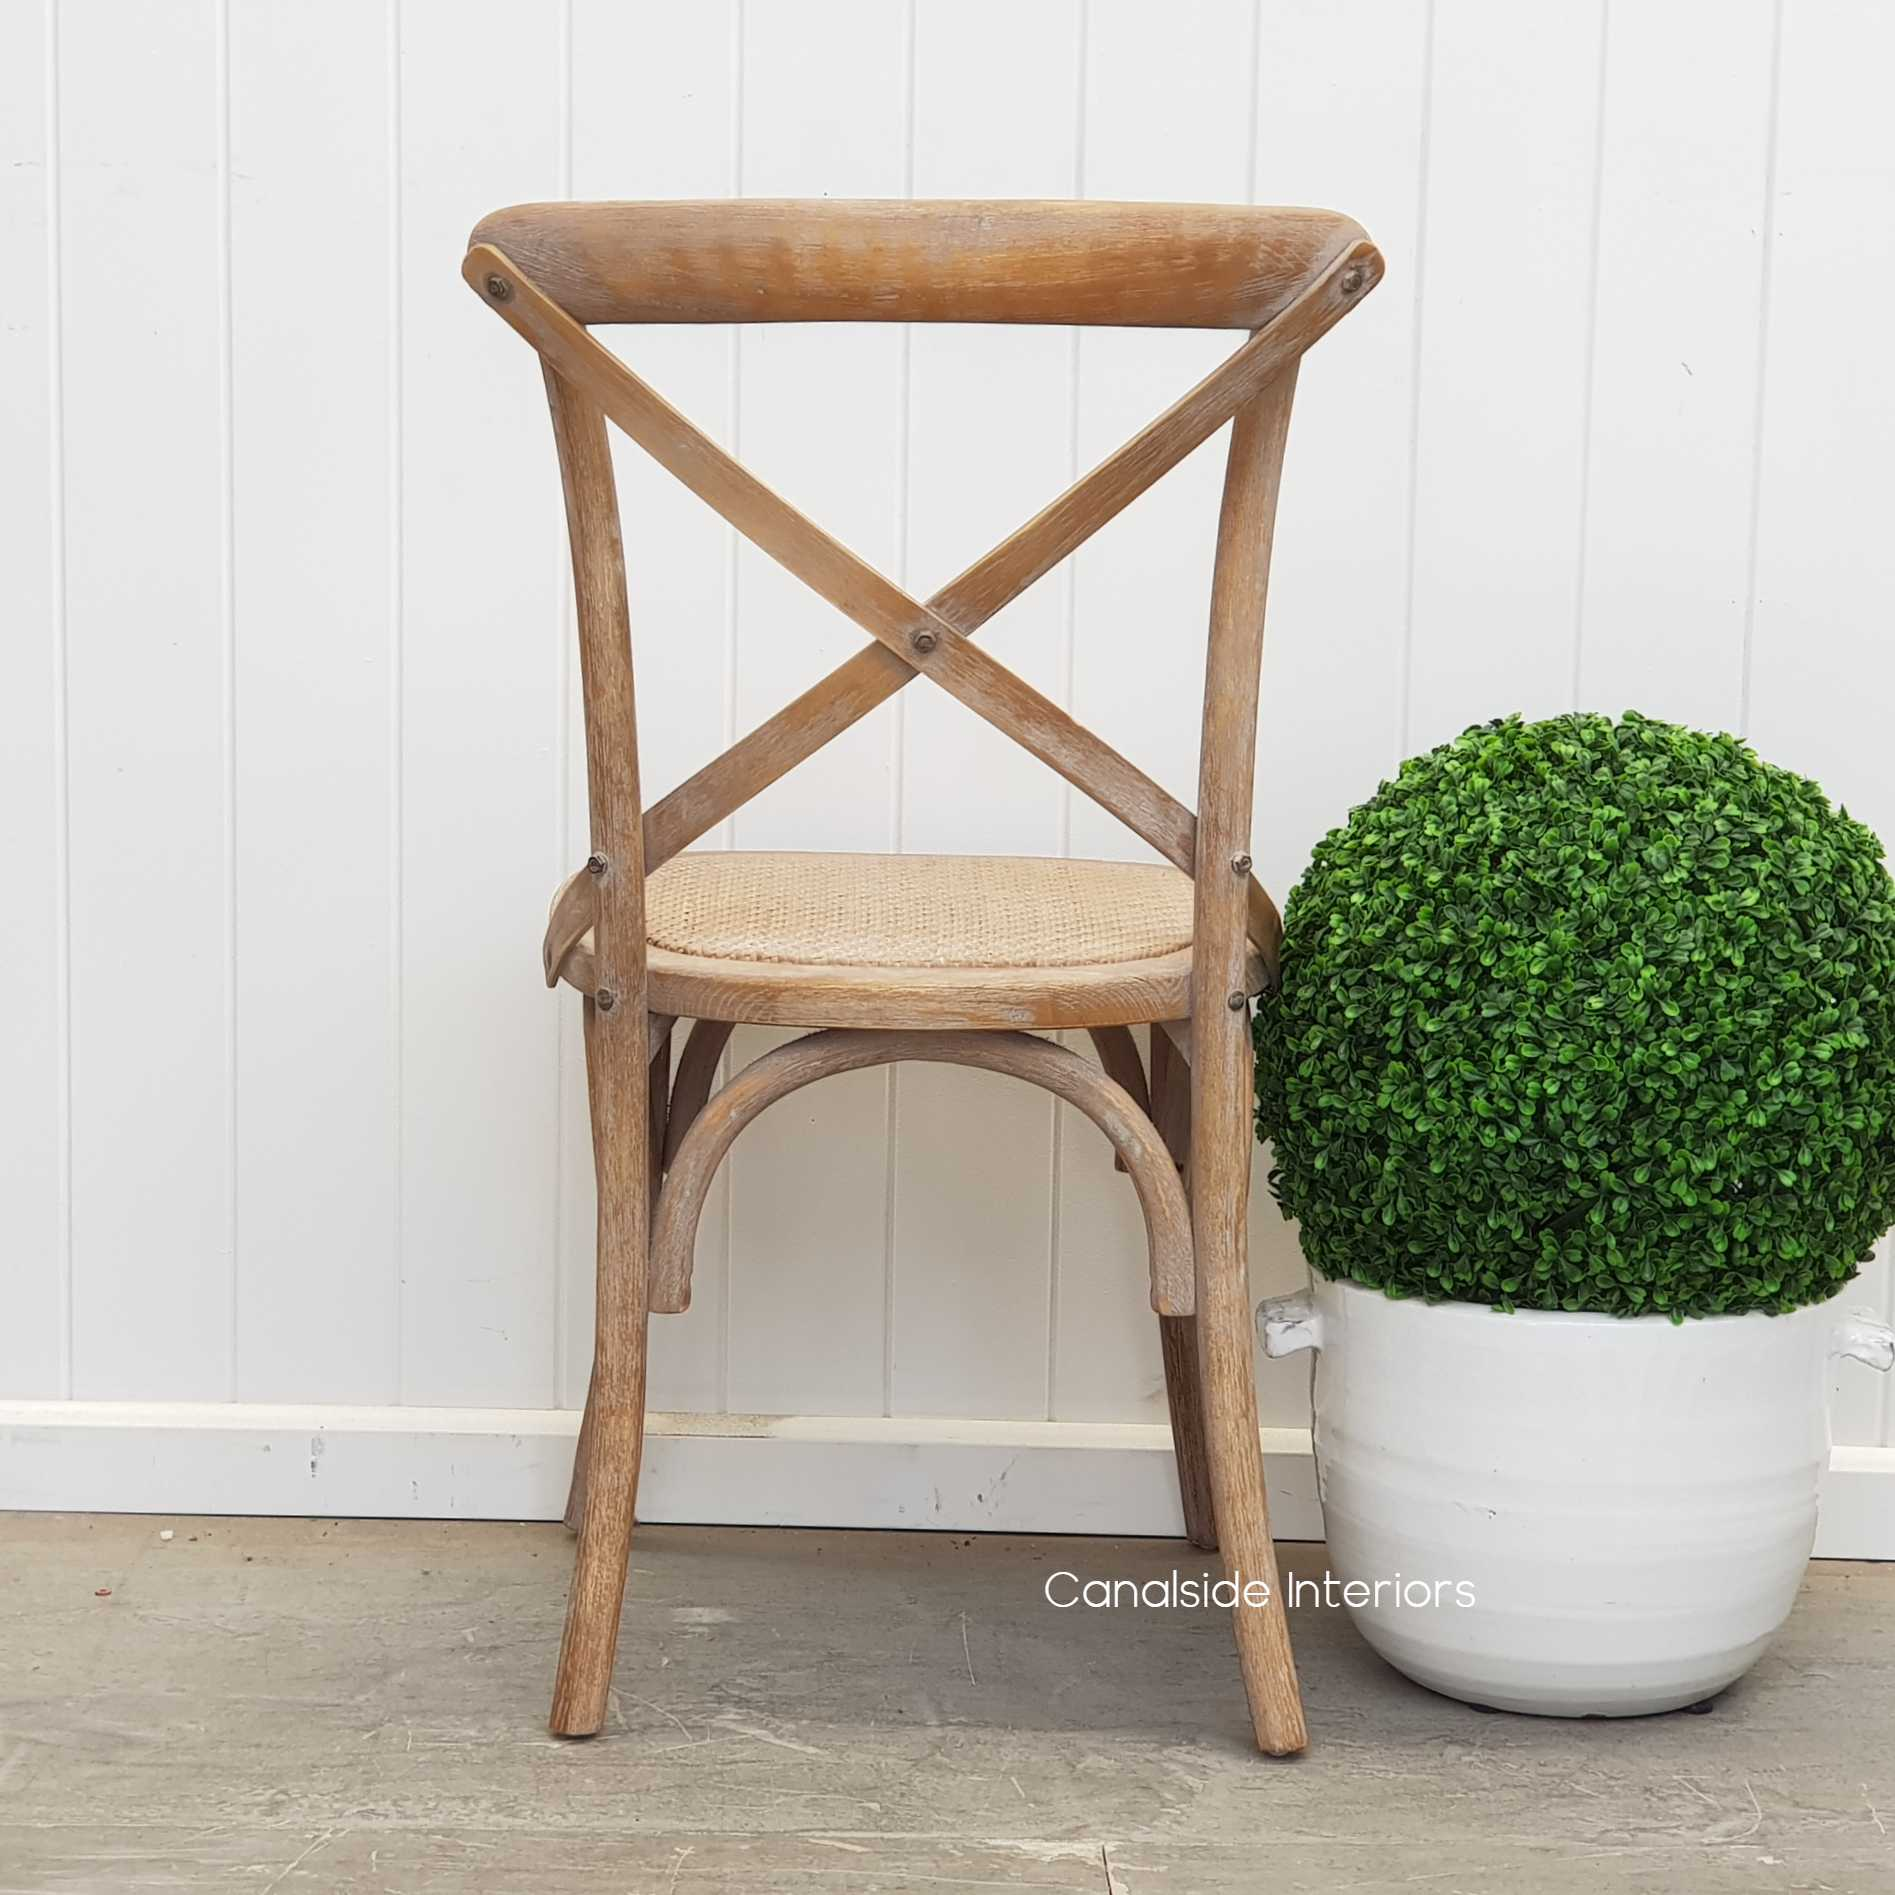 Cross Back Chair Oatmeal  Dining, CHAIRS, CAFE FURNITURE, HAMPTONS Style, PLANTATION Style, CHAIRS Dining, CAFE FURNITURE Stools & Chairs